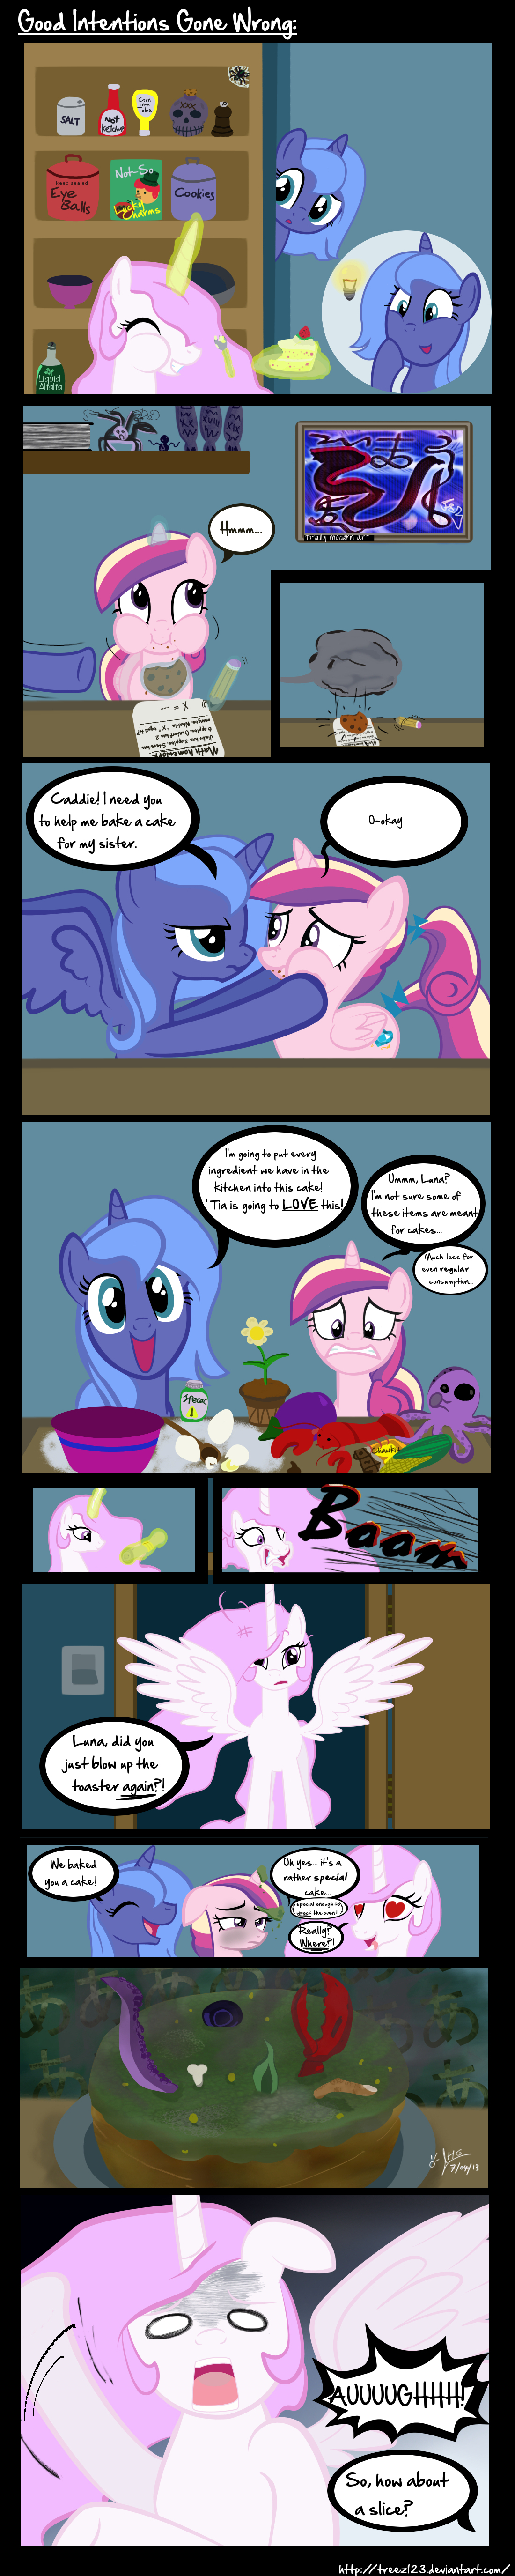 Good Intentions Gone Wrong by treez123